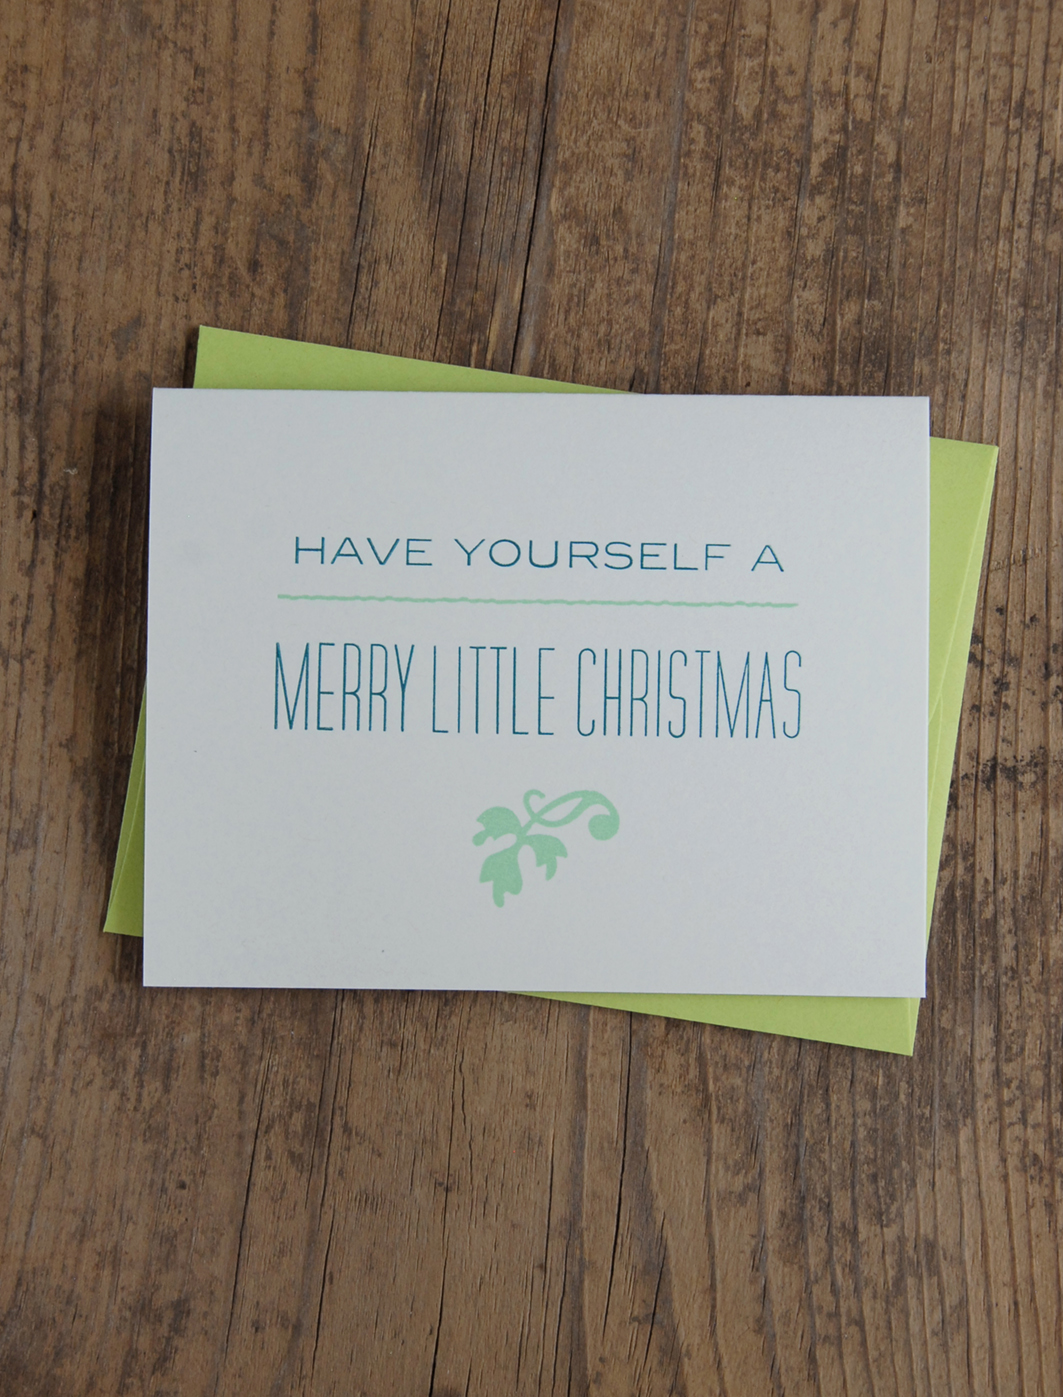 Have yourself a merry little christmas letterpress greeting card home greeting cards holiday have yourself a merry little christmas letterpress greeting card m4hsunfo